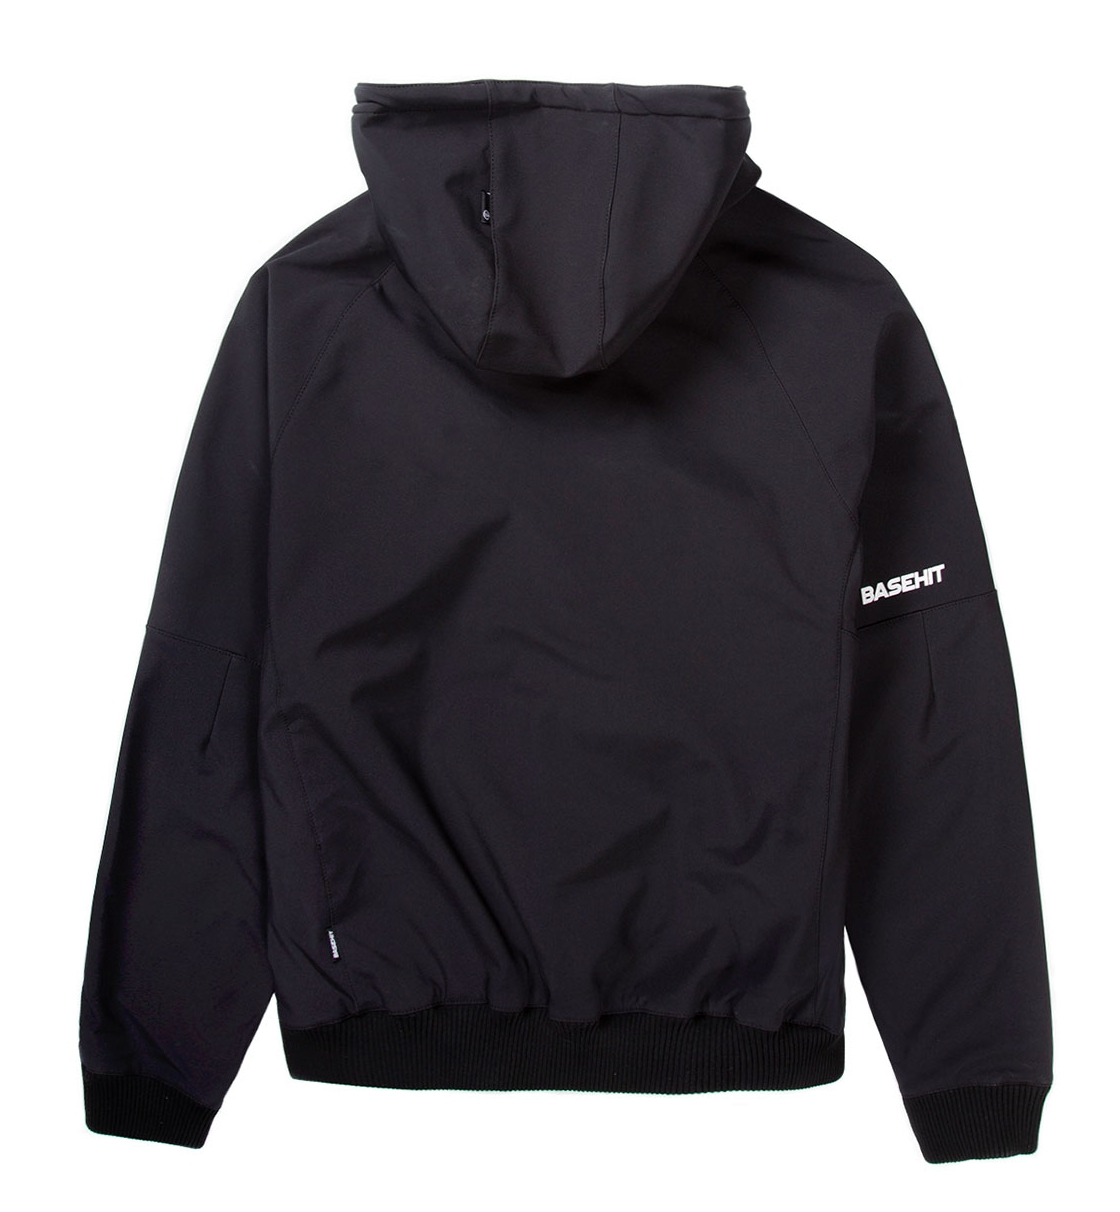 Basehit Ss19 Men'S Soft Shell Ribbed Jkt, With Hood